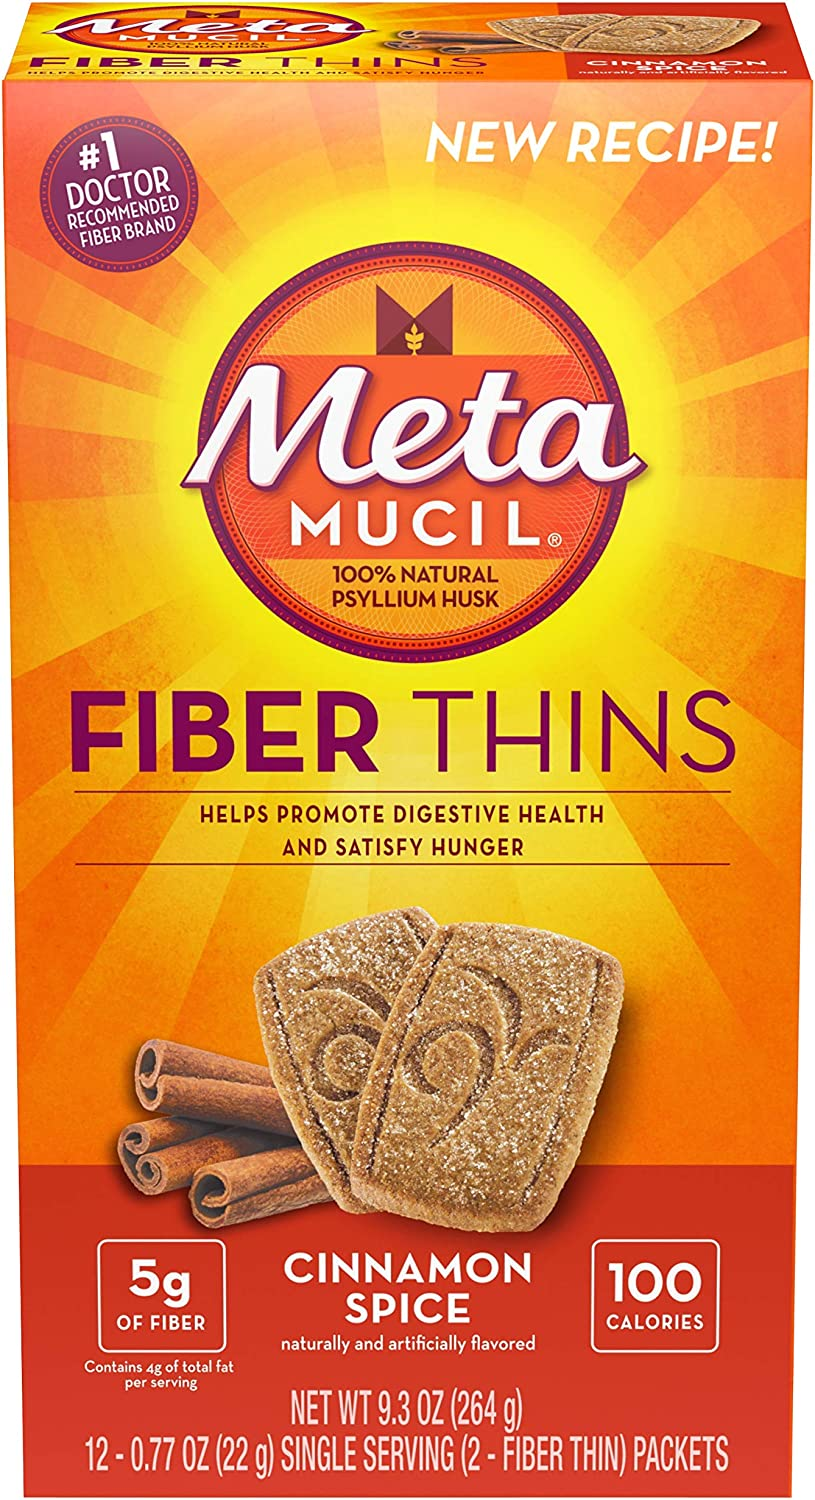 Metamucil Fiber Thins Cinnamon Spice 3-boxes of 12 packets. Each of the 12 packets contain 2 fiber thins